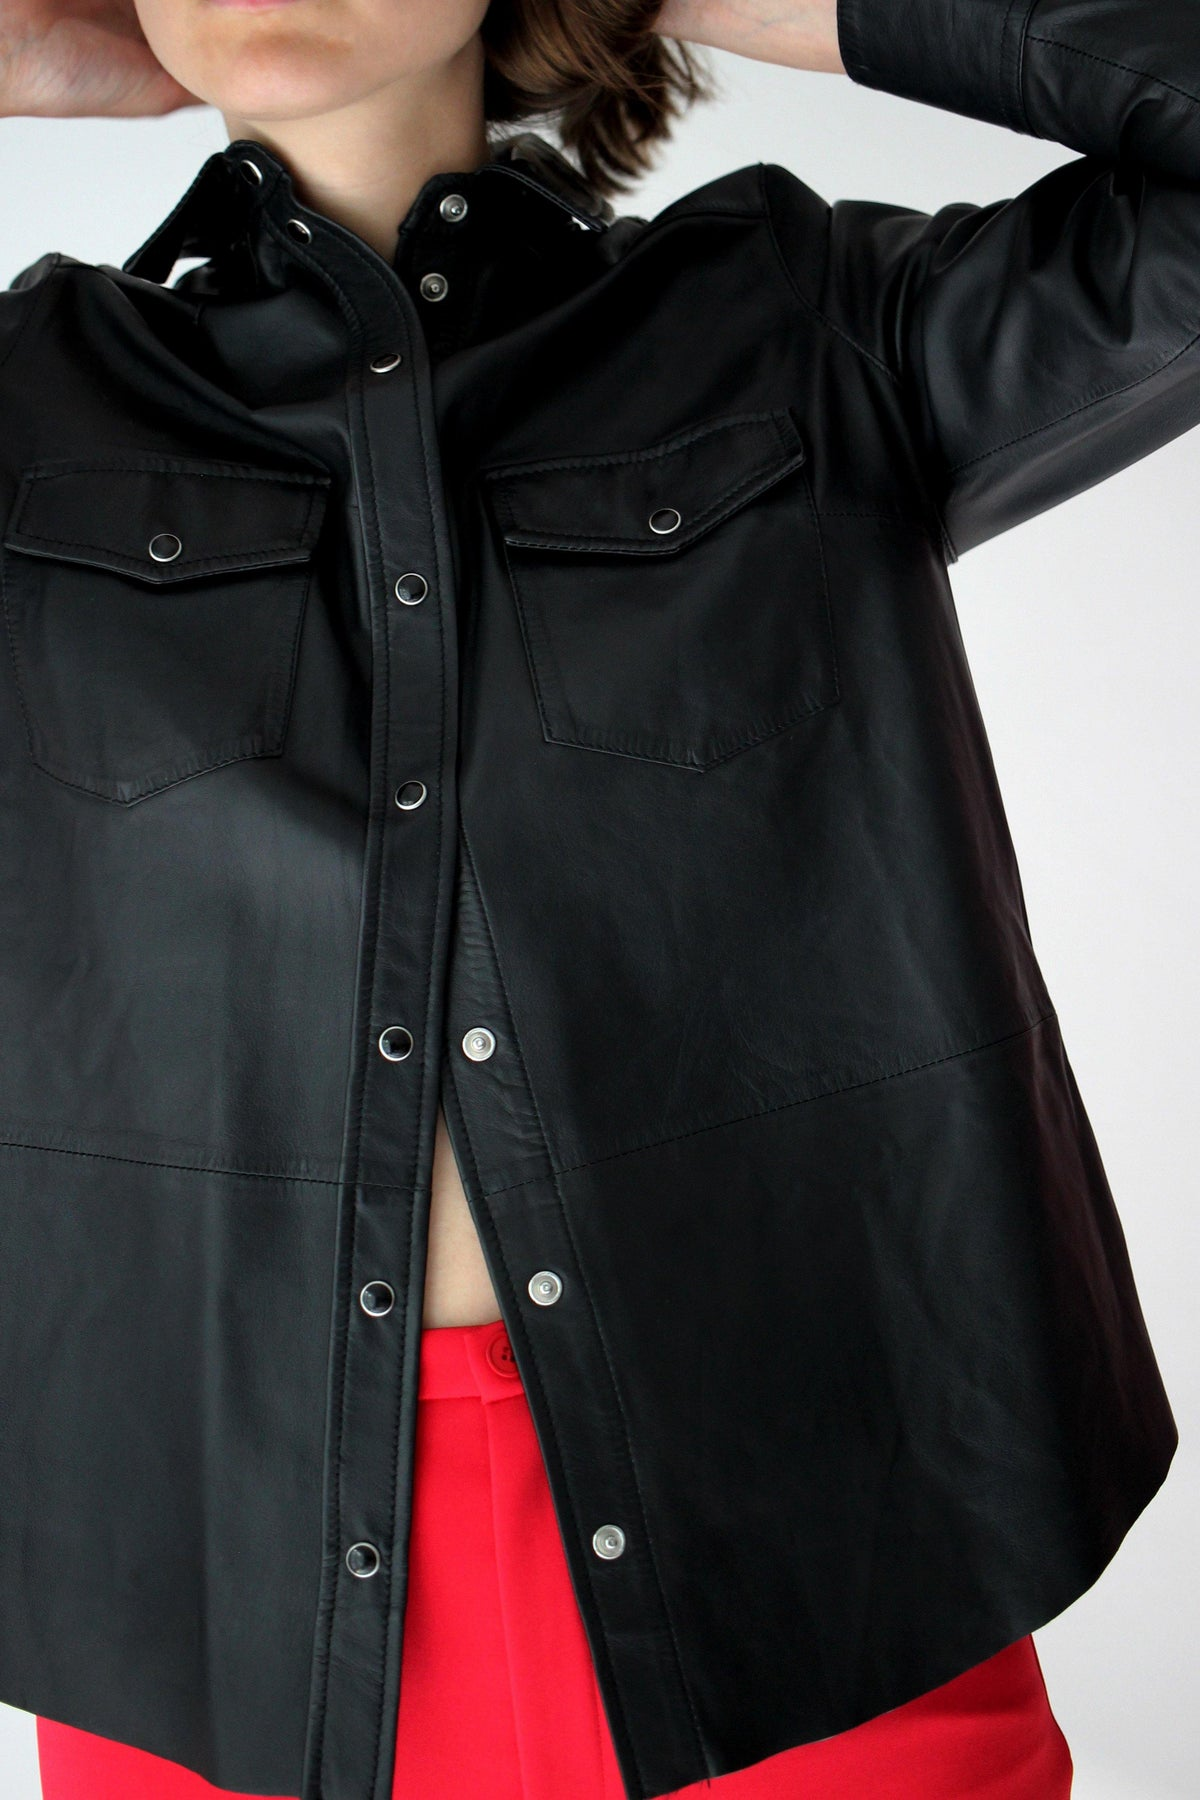 SET Leather Shirt - The Good Store Berlin